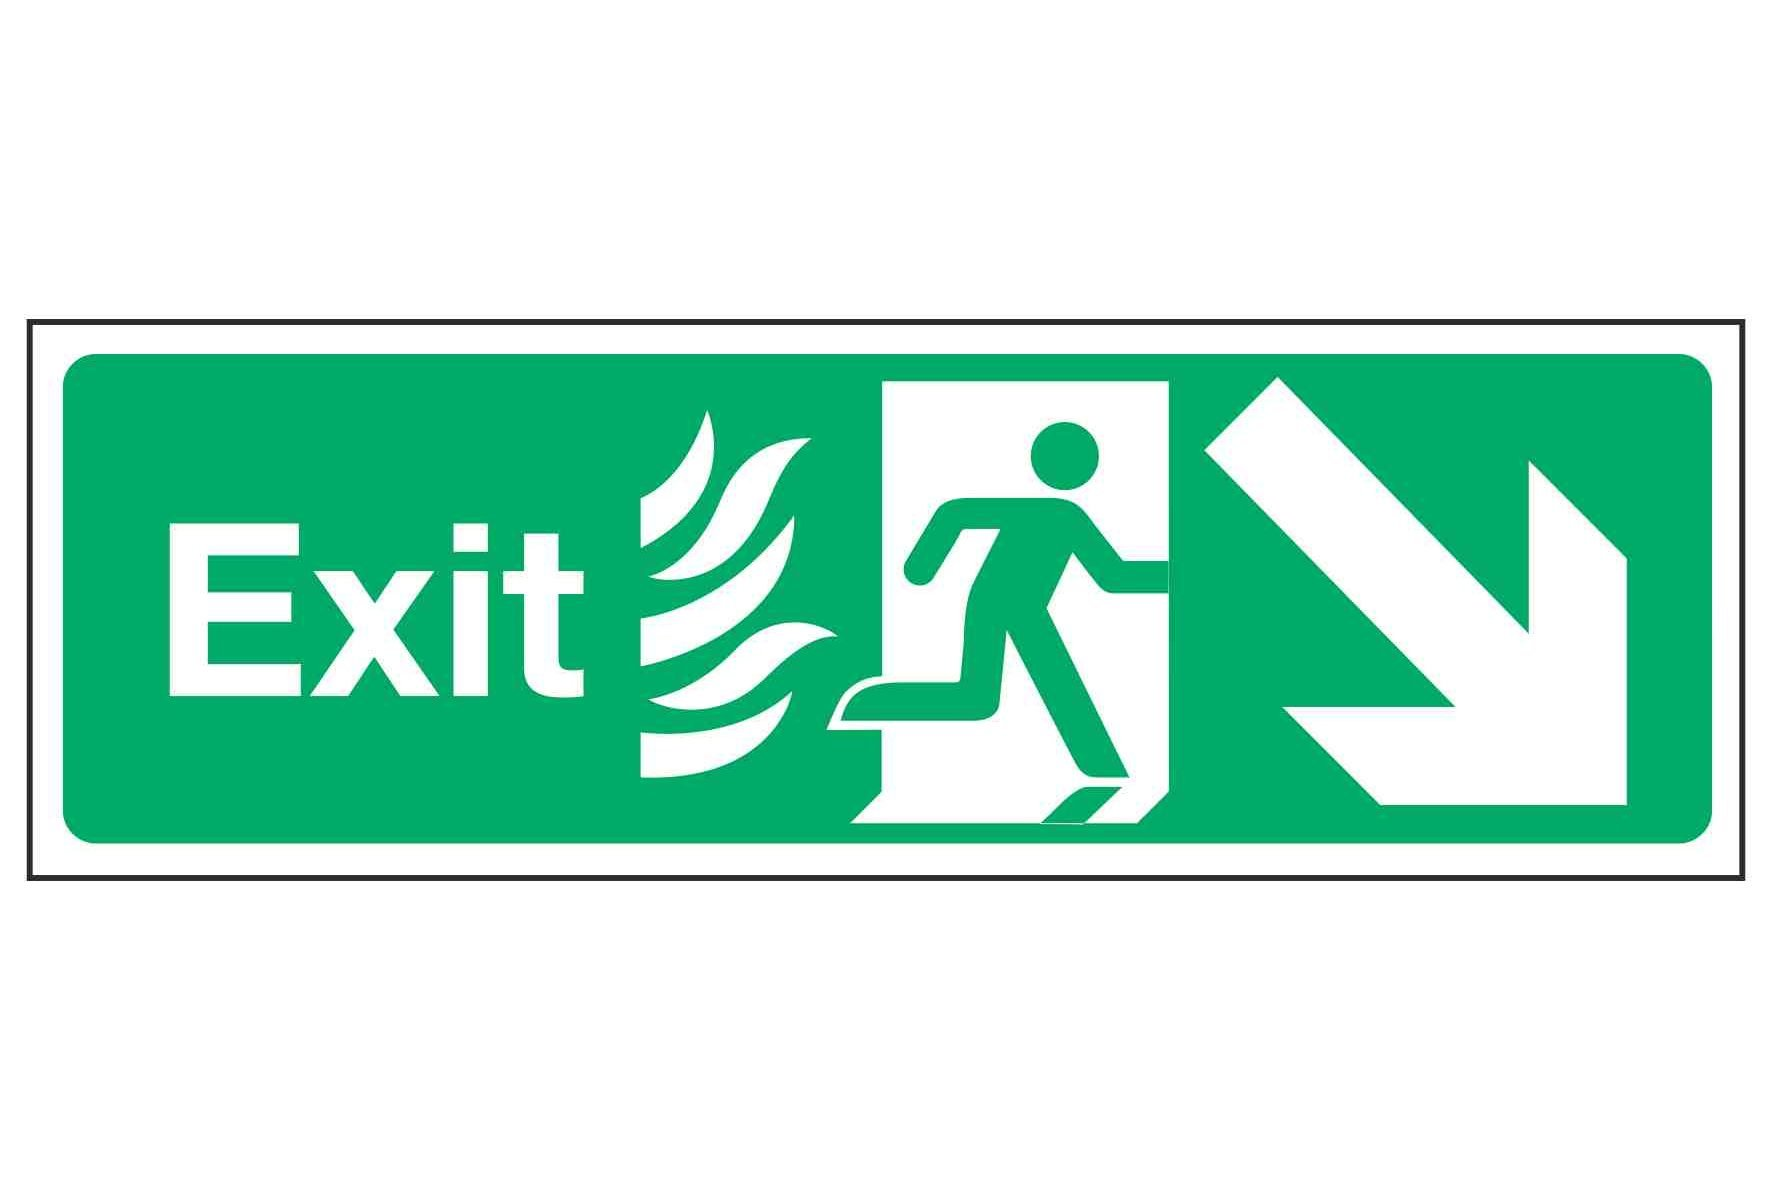 Exit / Arrow Down Right - NHS